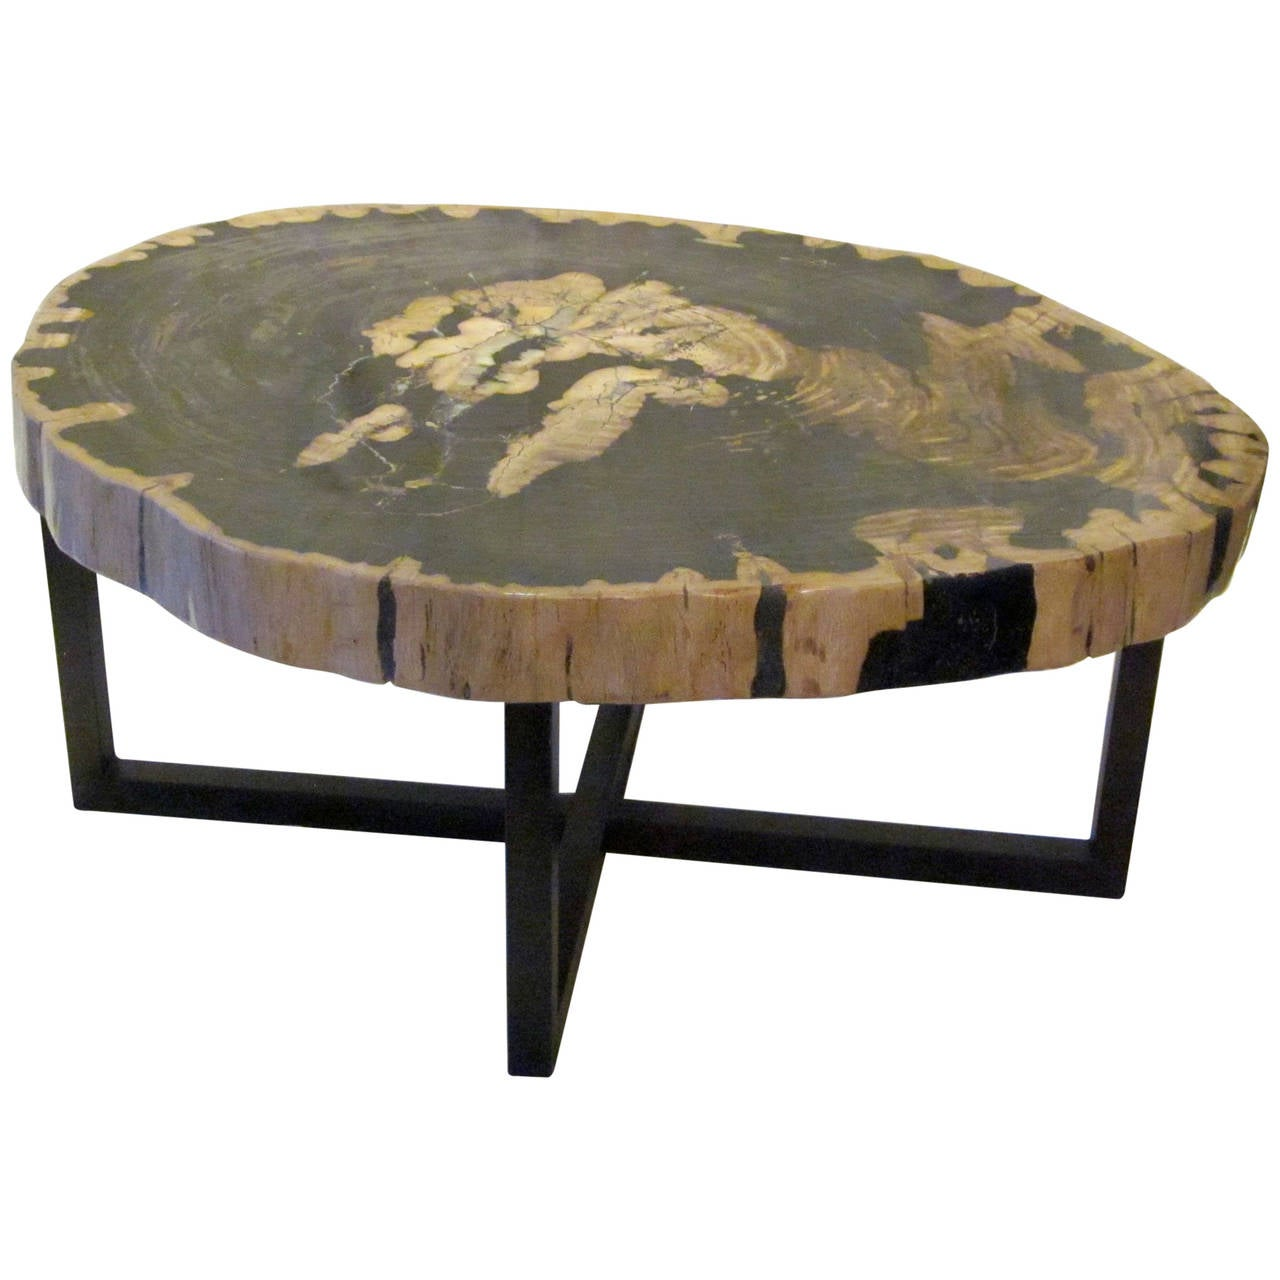 Contemporary Indonesian Petrified Wood Coffee Table At 1stdibs